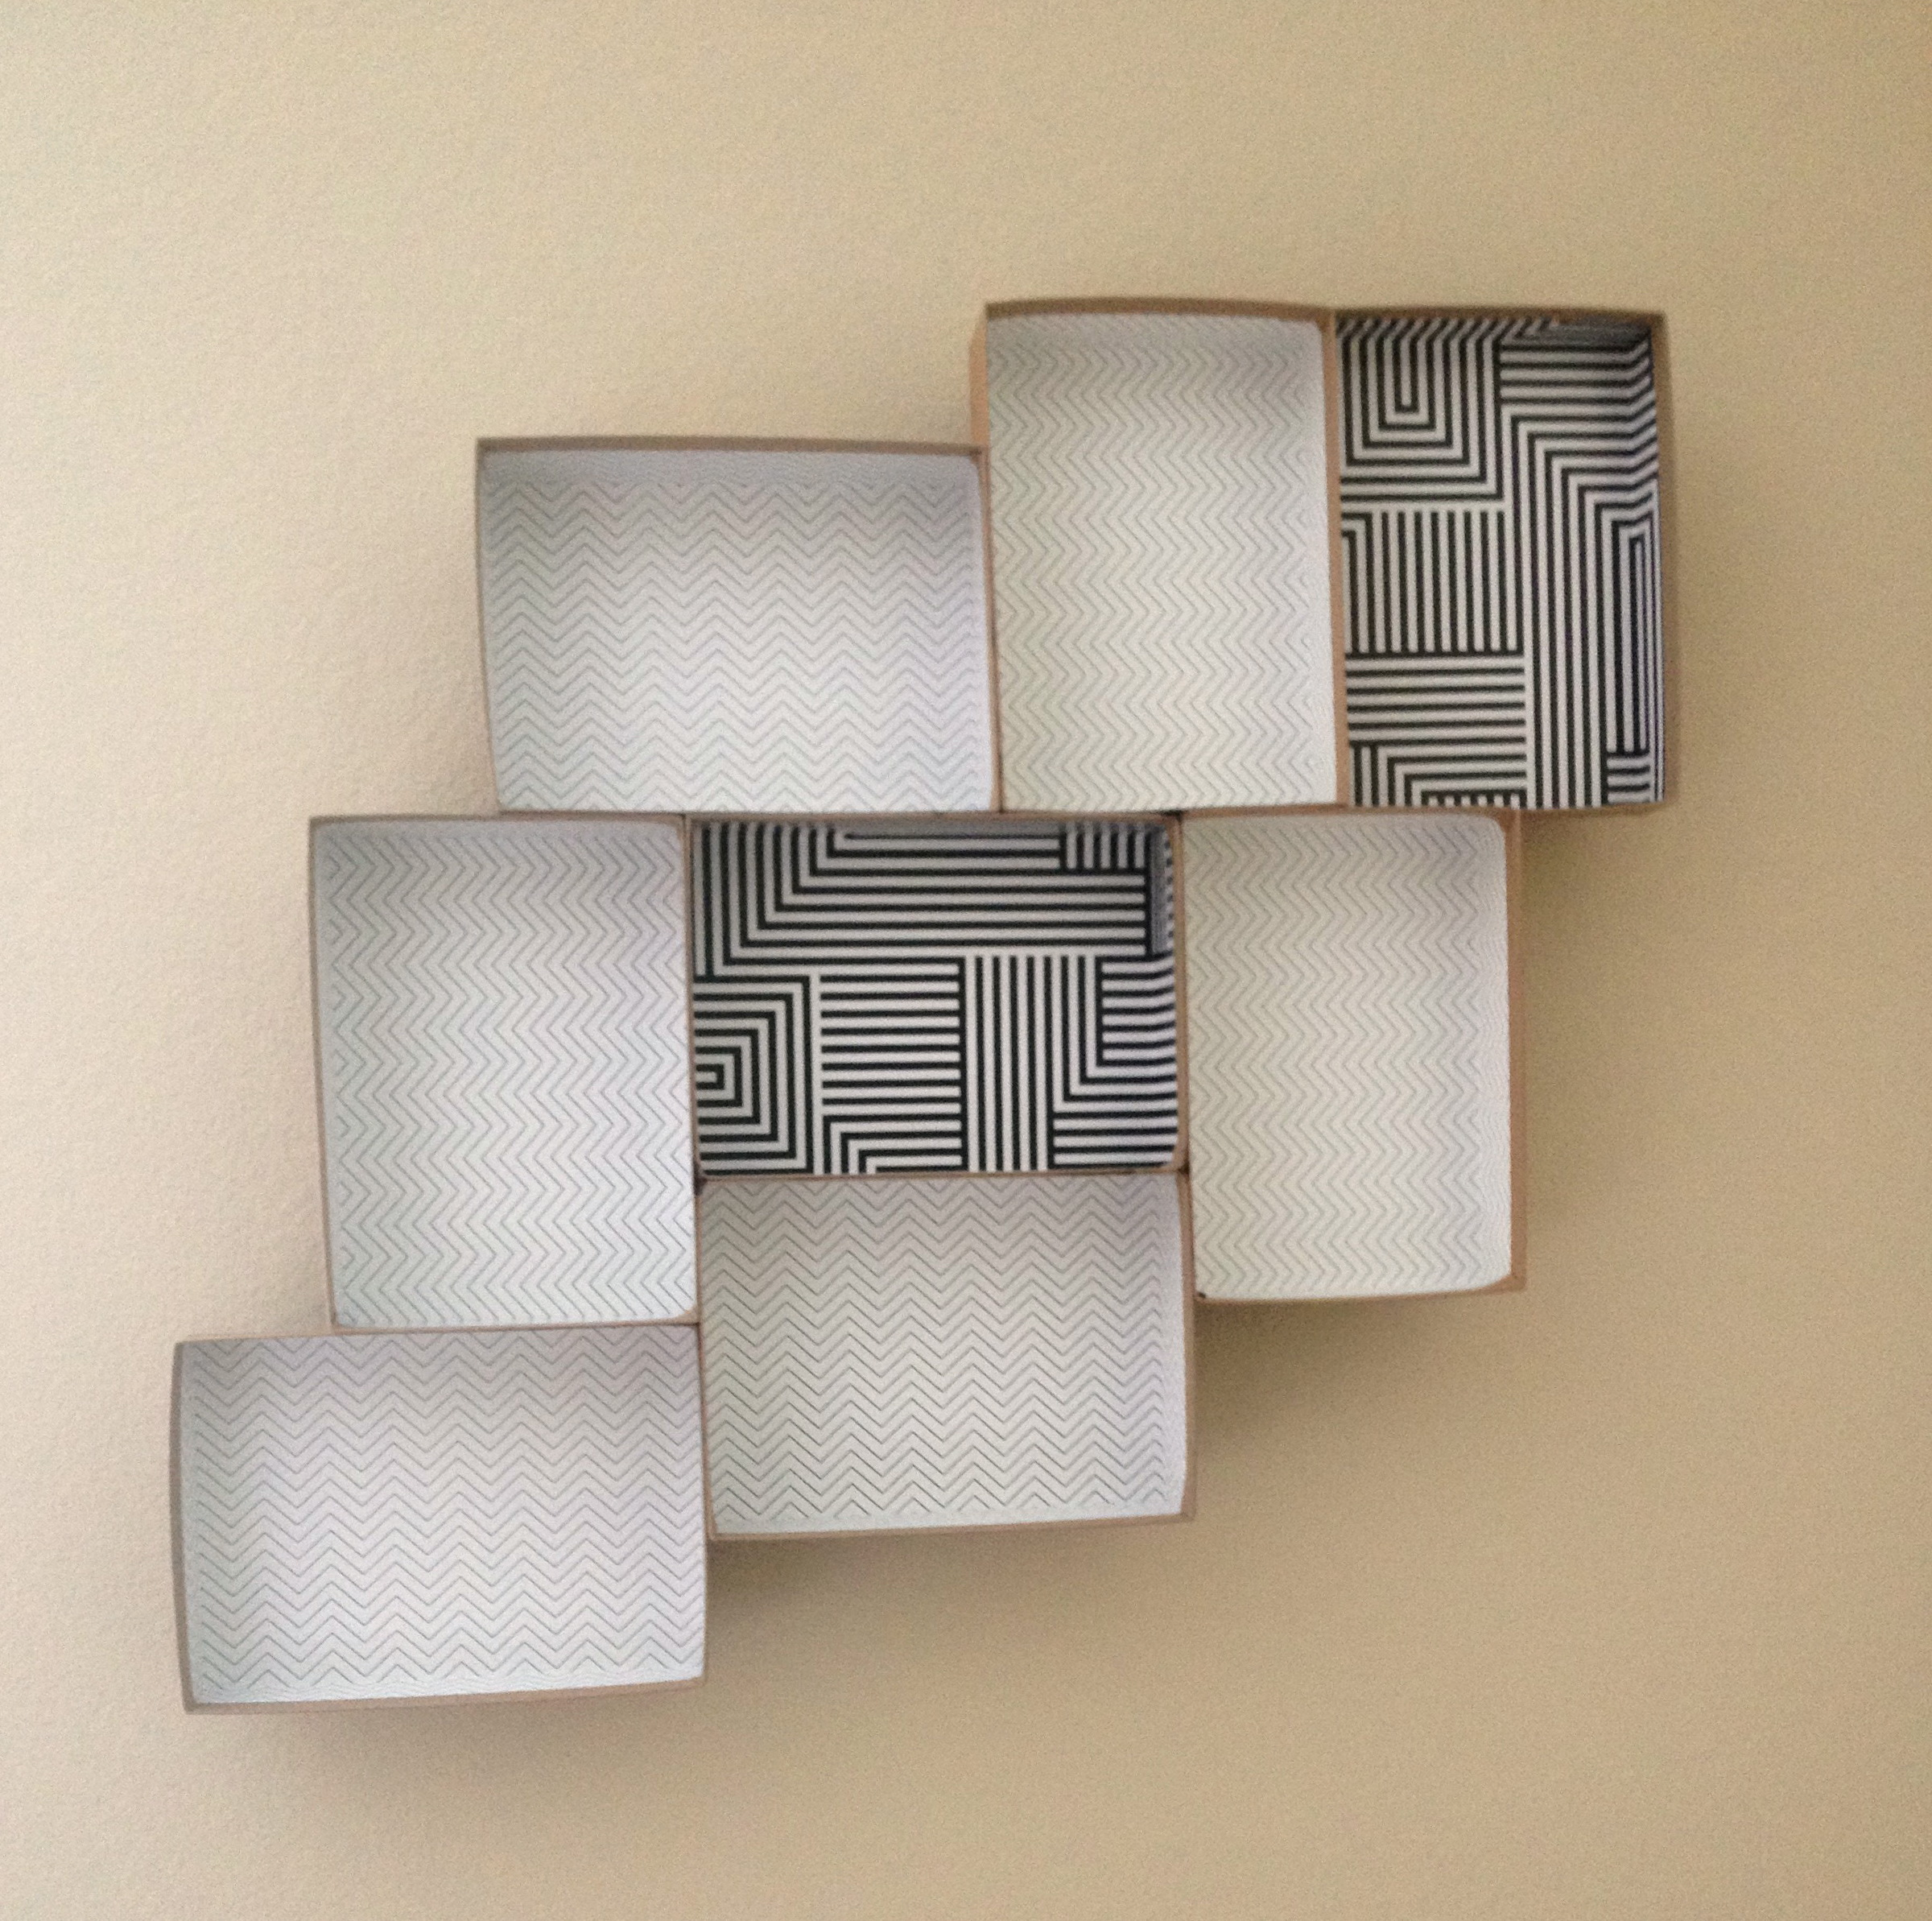 Wall Box Shelves Diy